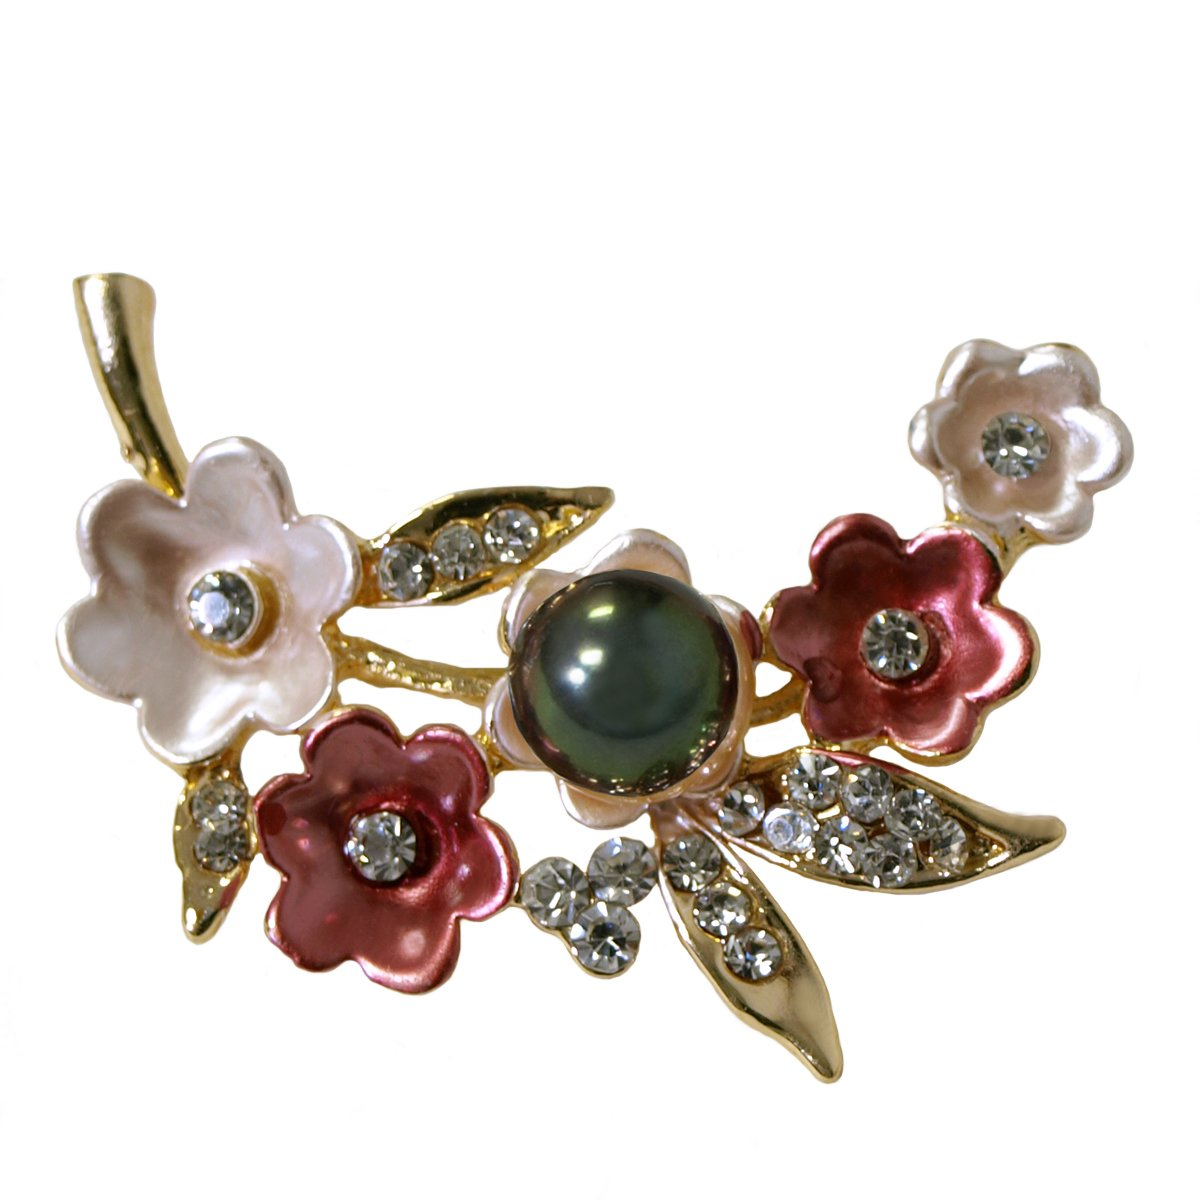 Cherry Blossoms Faux Pearl and Rhinestone Brooch - Multi-Color